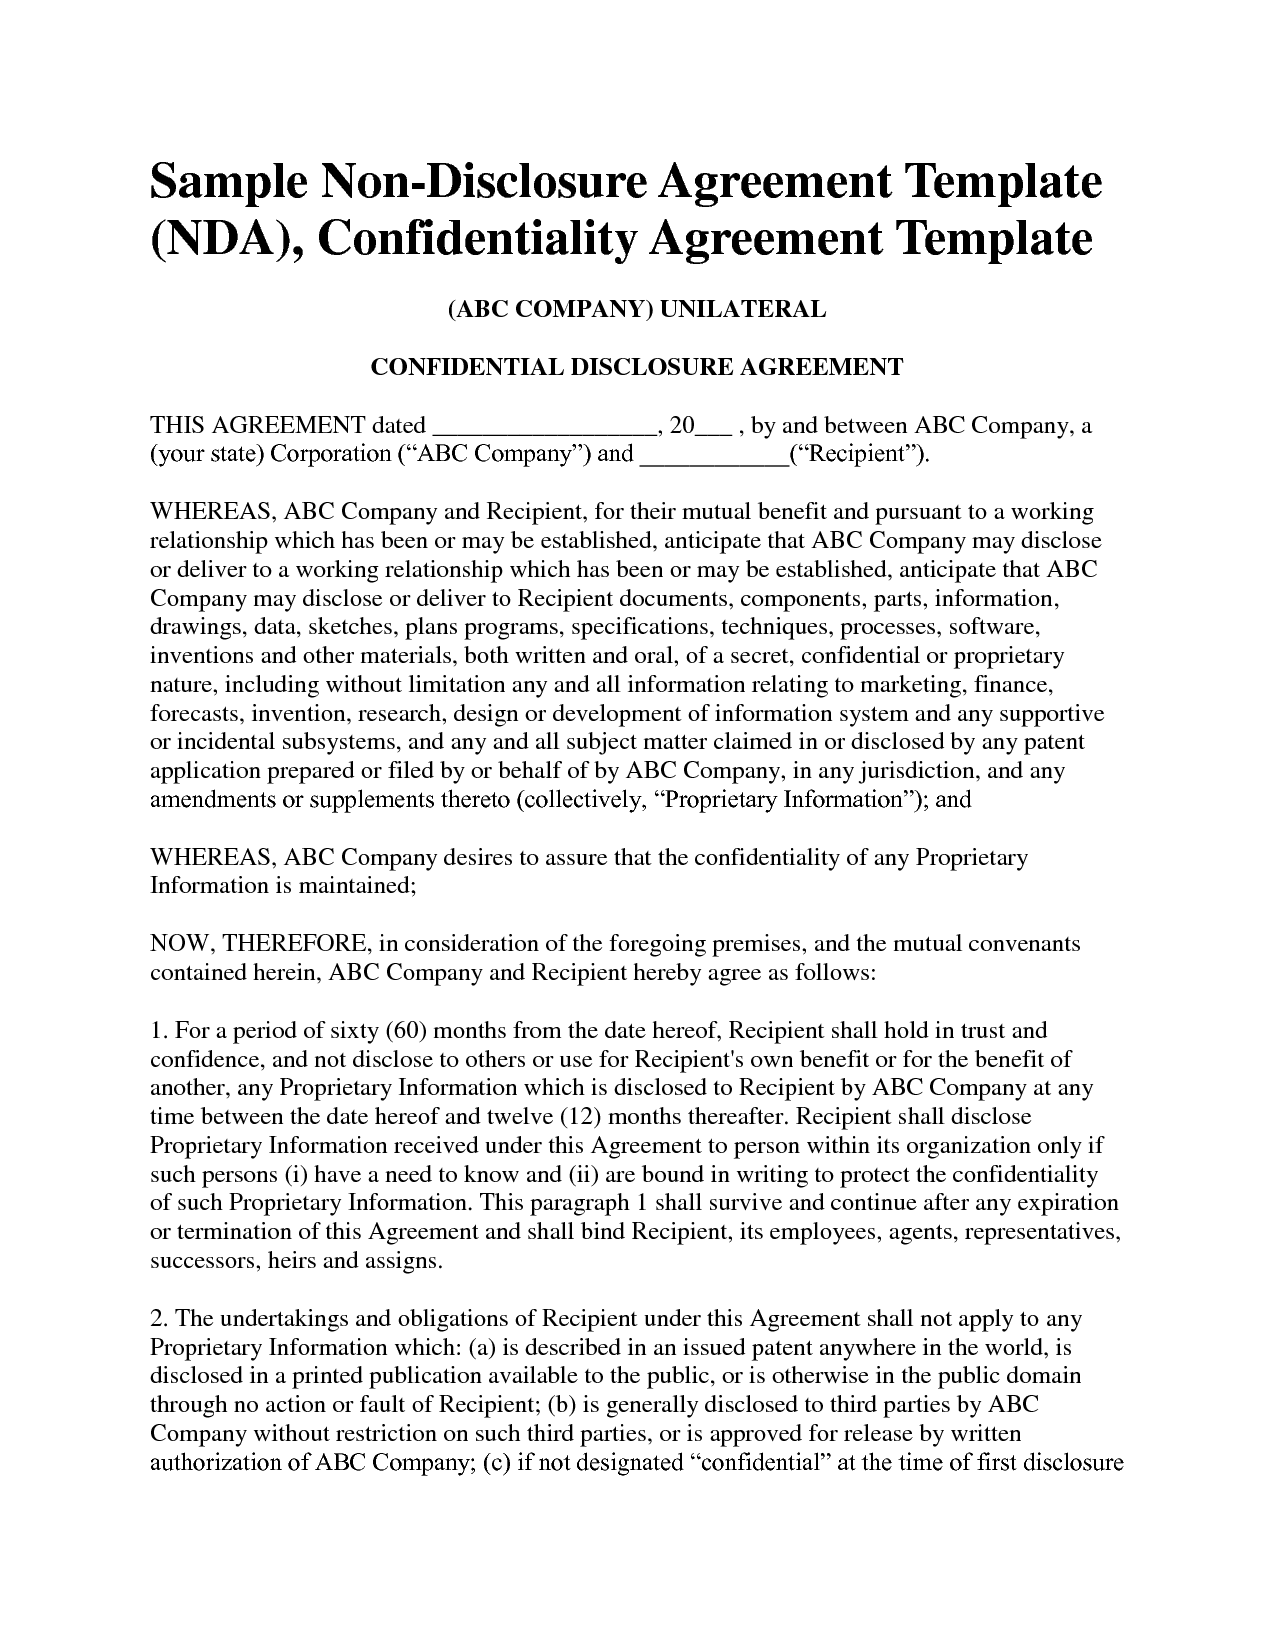 non disclosure agreement confidentiality agreement sample for